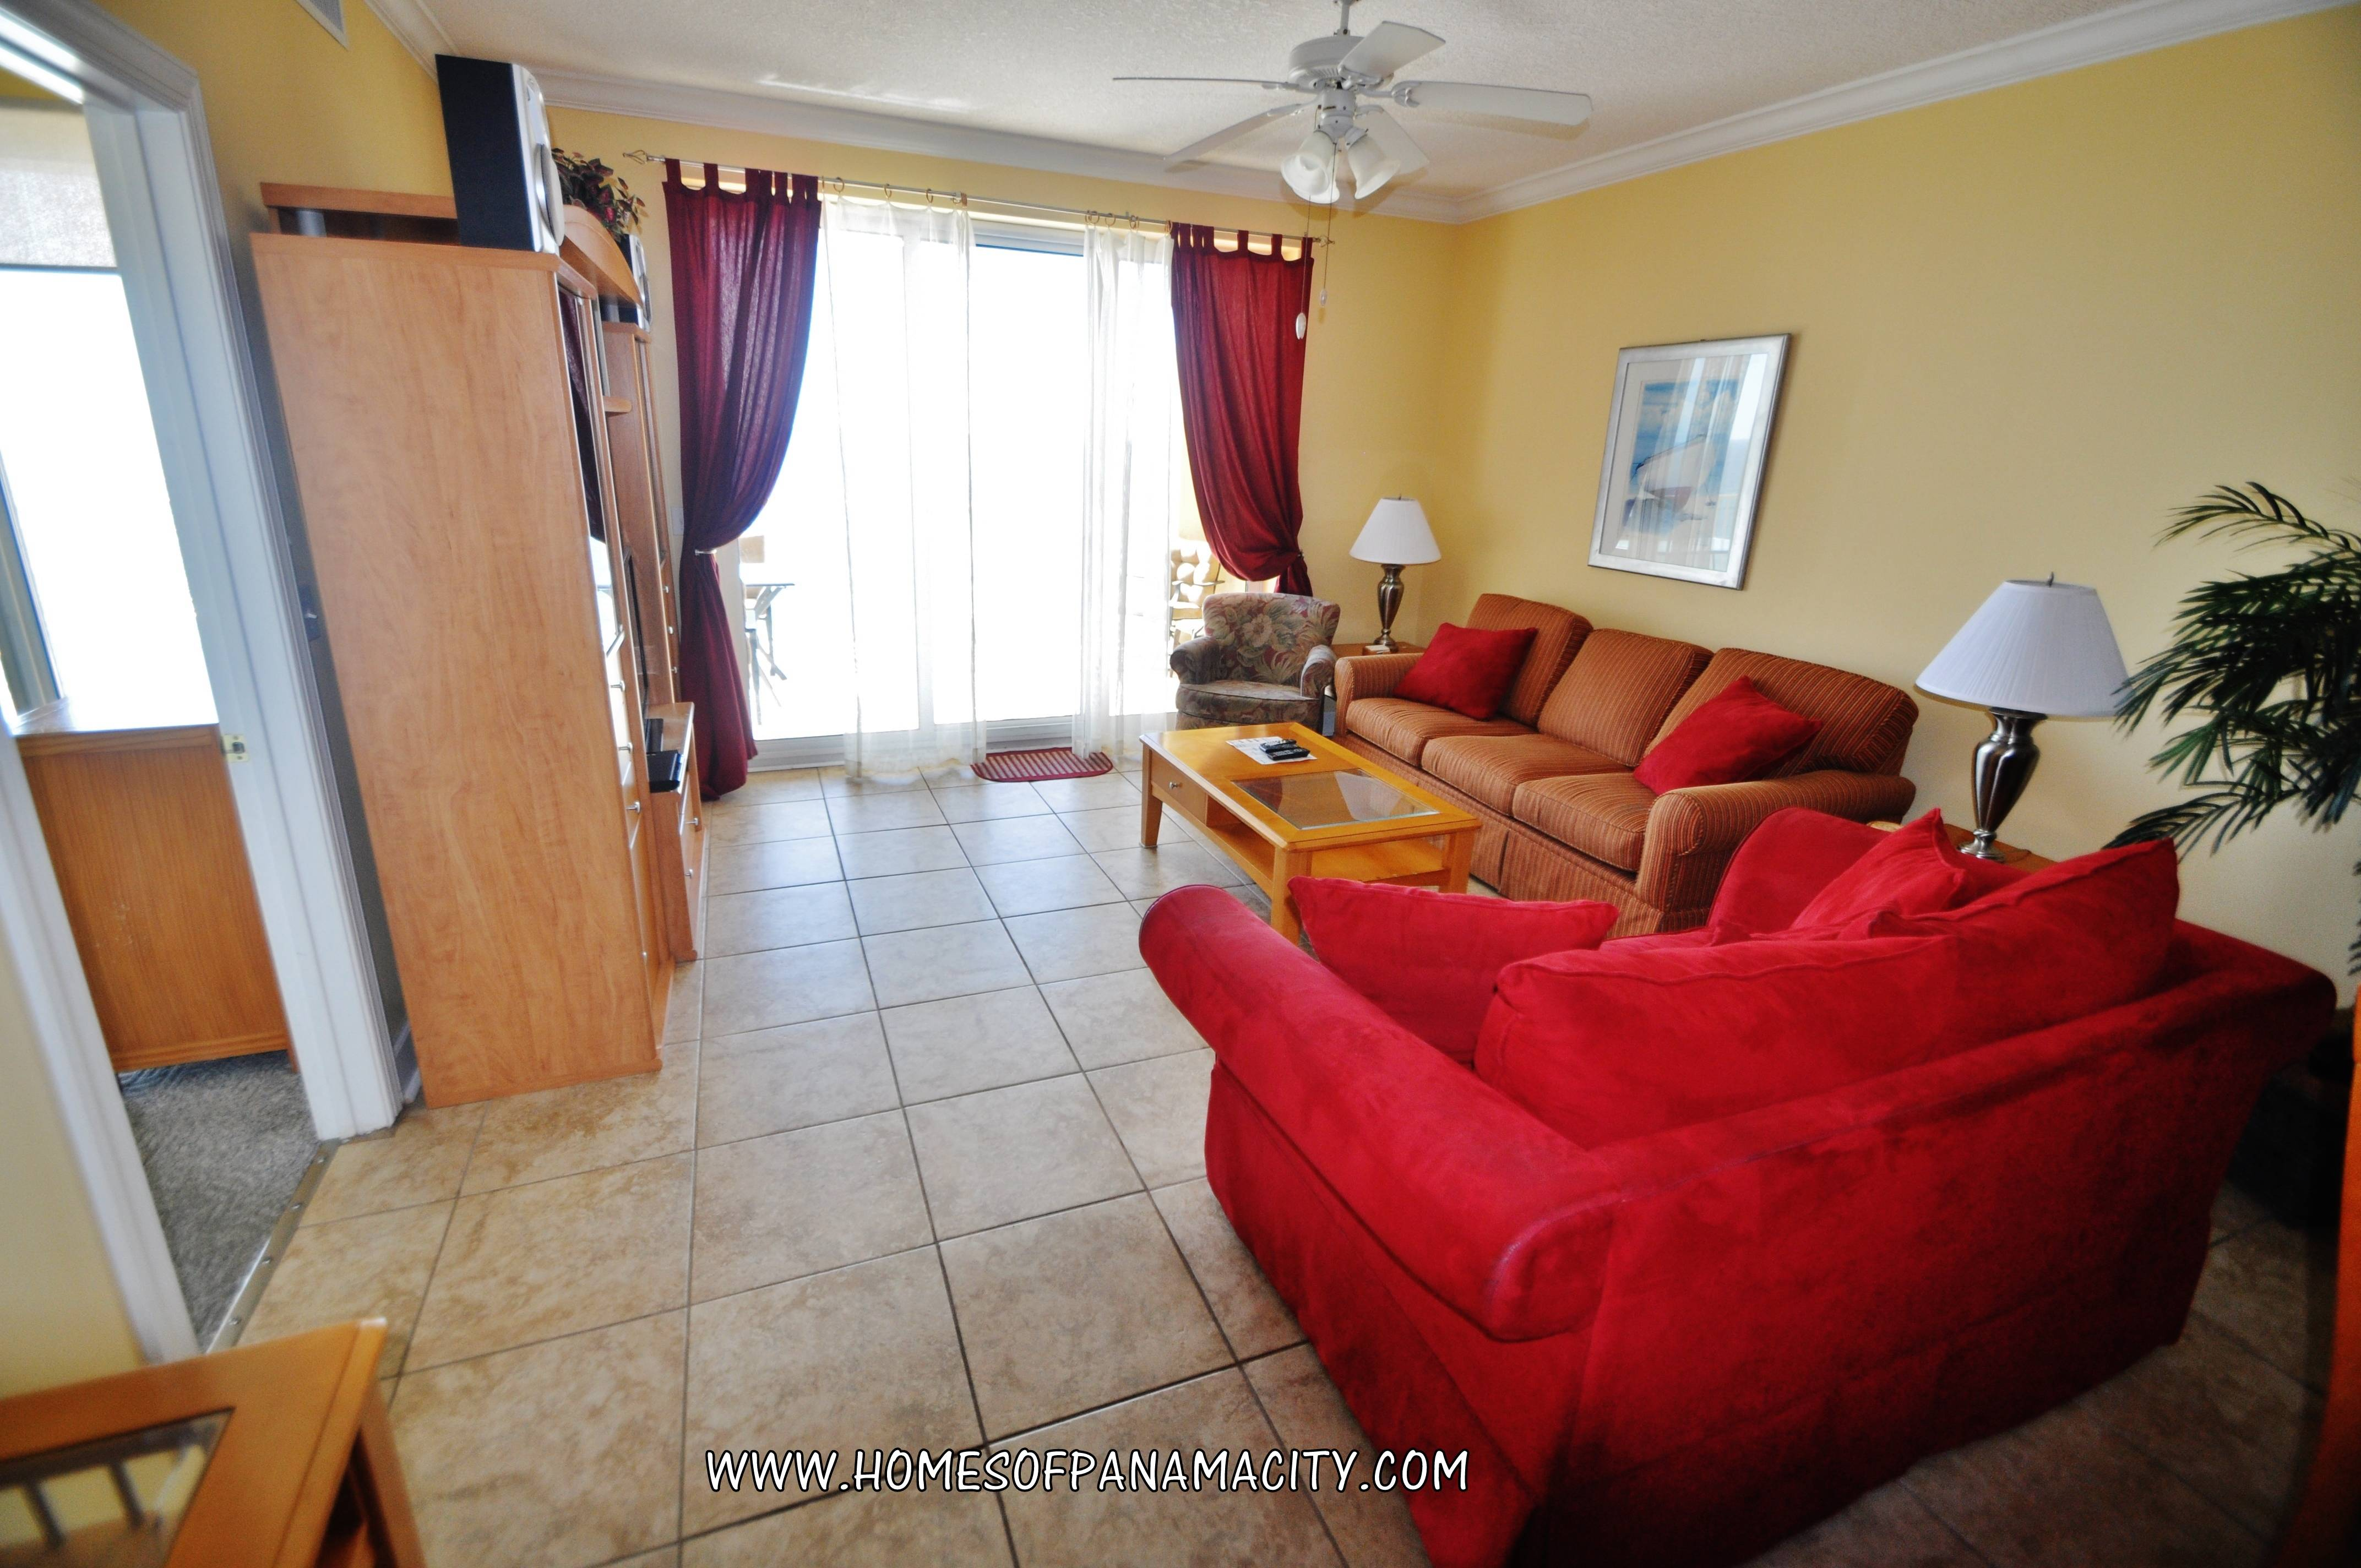 Condo Just Listed In Panama City Beach Waterfront View